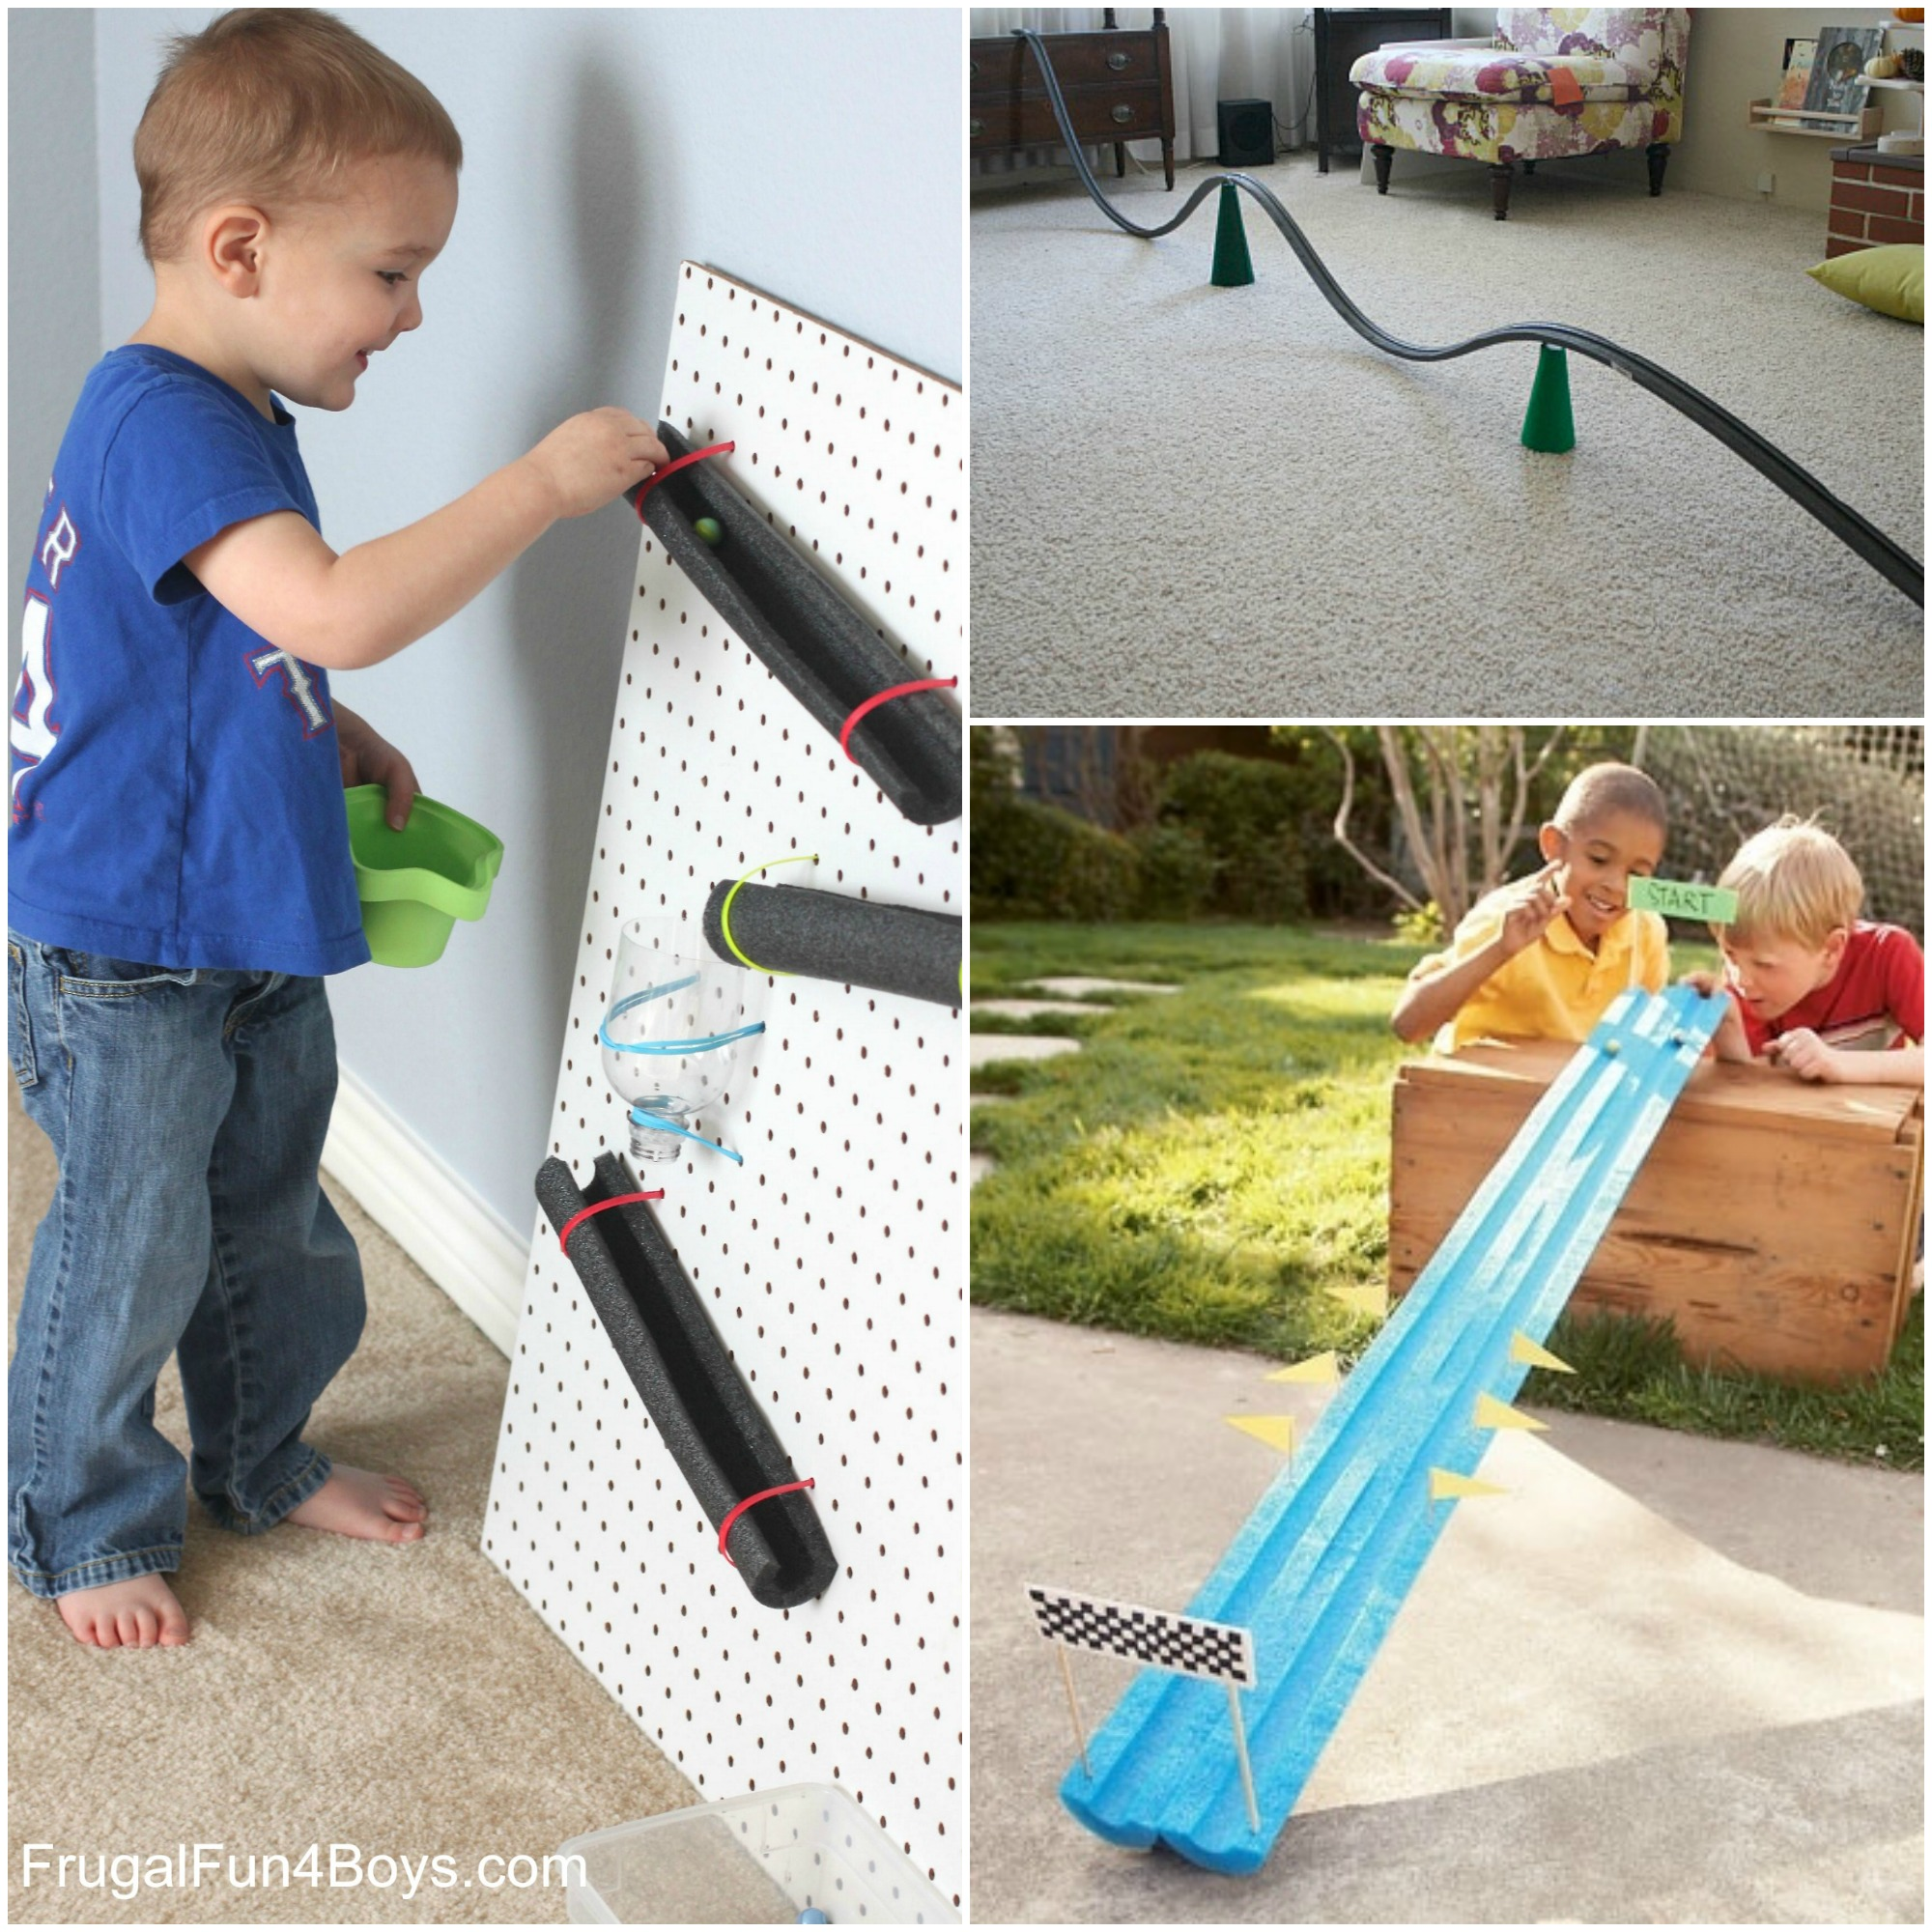 The Best Marble Runs for Kids to Build and Play